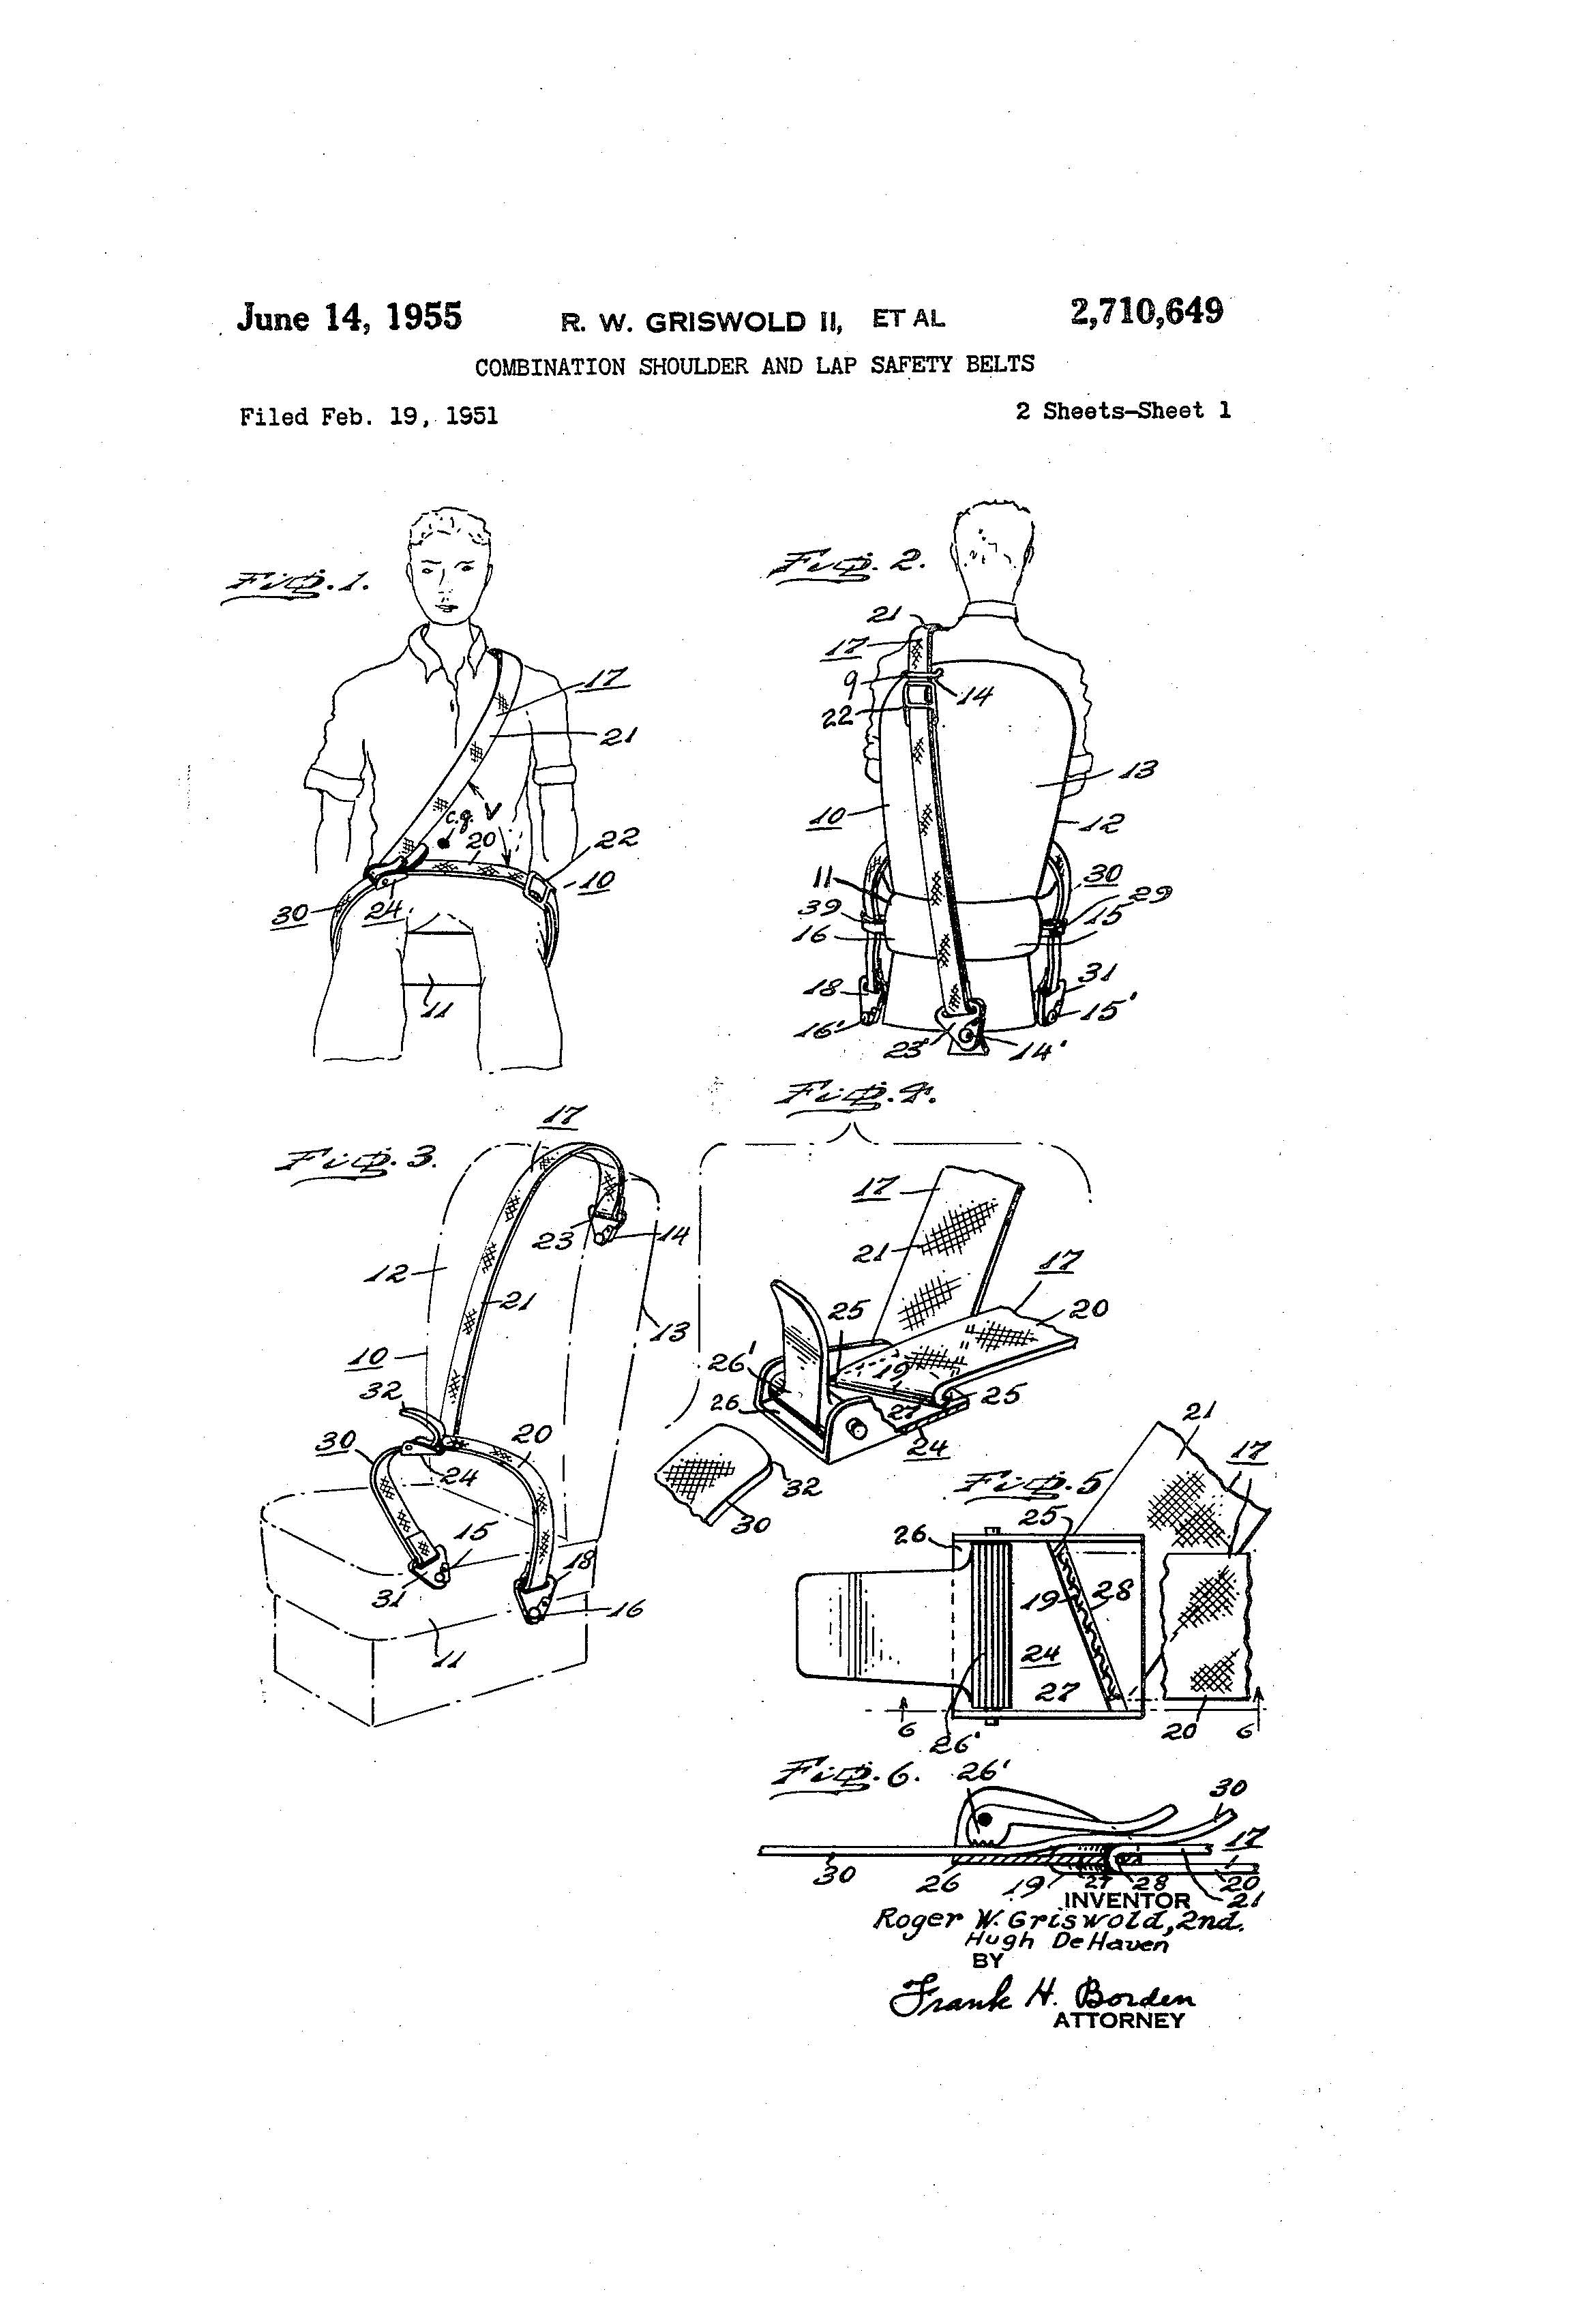 Patent Of The Day Combination Shoulder And Lap Safety